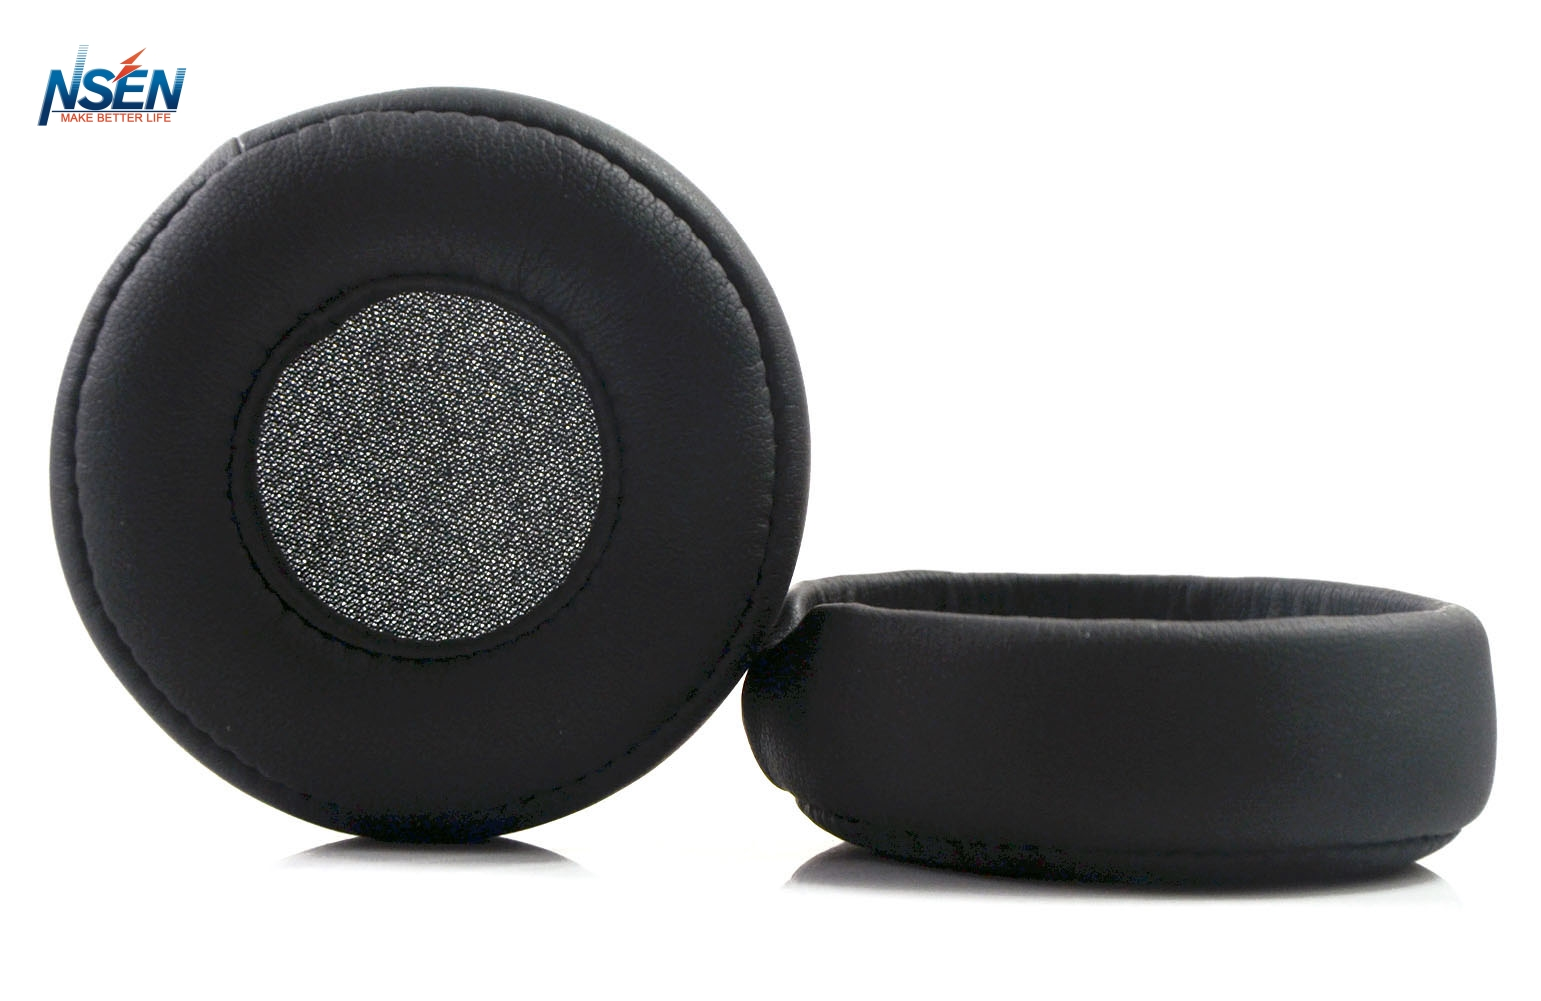 Replacement Ear Cushion Pad Cups Cover Earpads Repair Parts For Beats Mixr On-Ear Headphone replacement sponge ear pad cushion for monster beats pro detox headphone headset